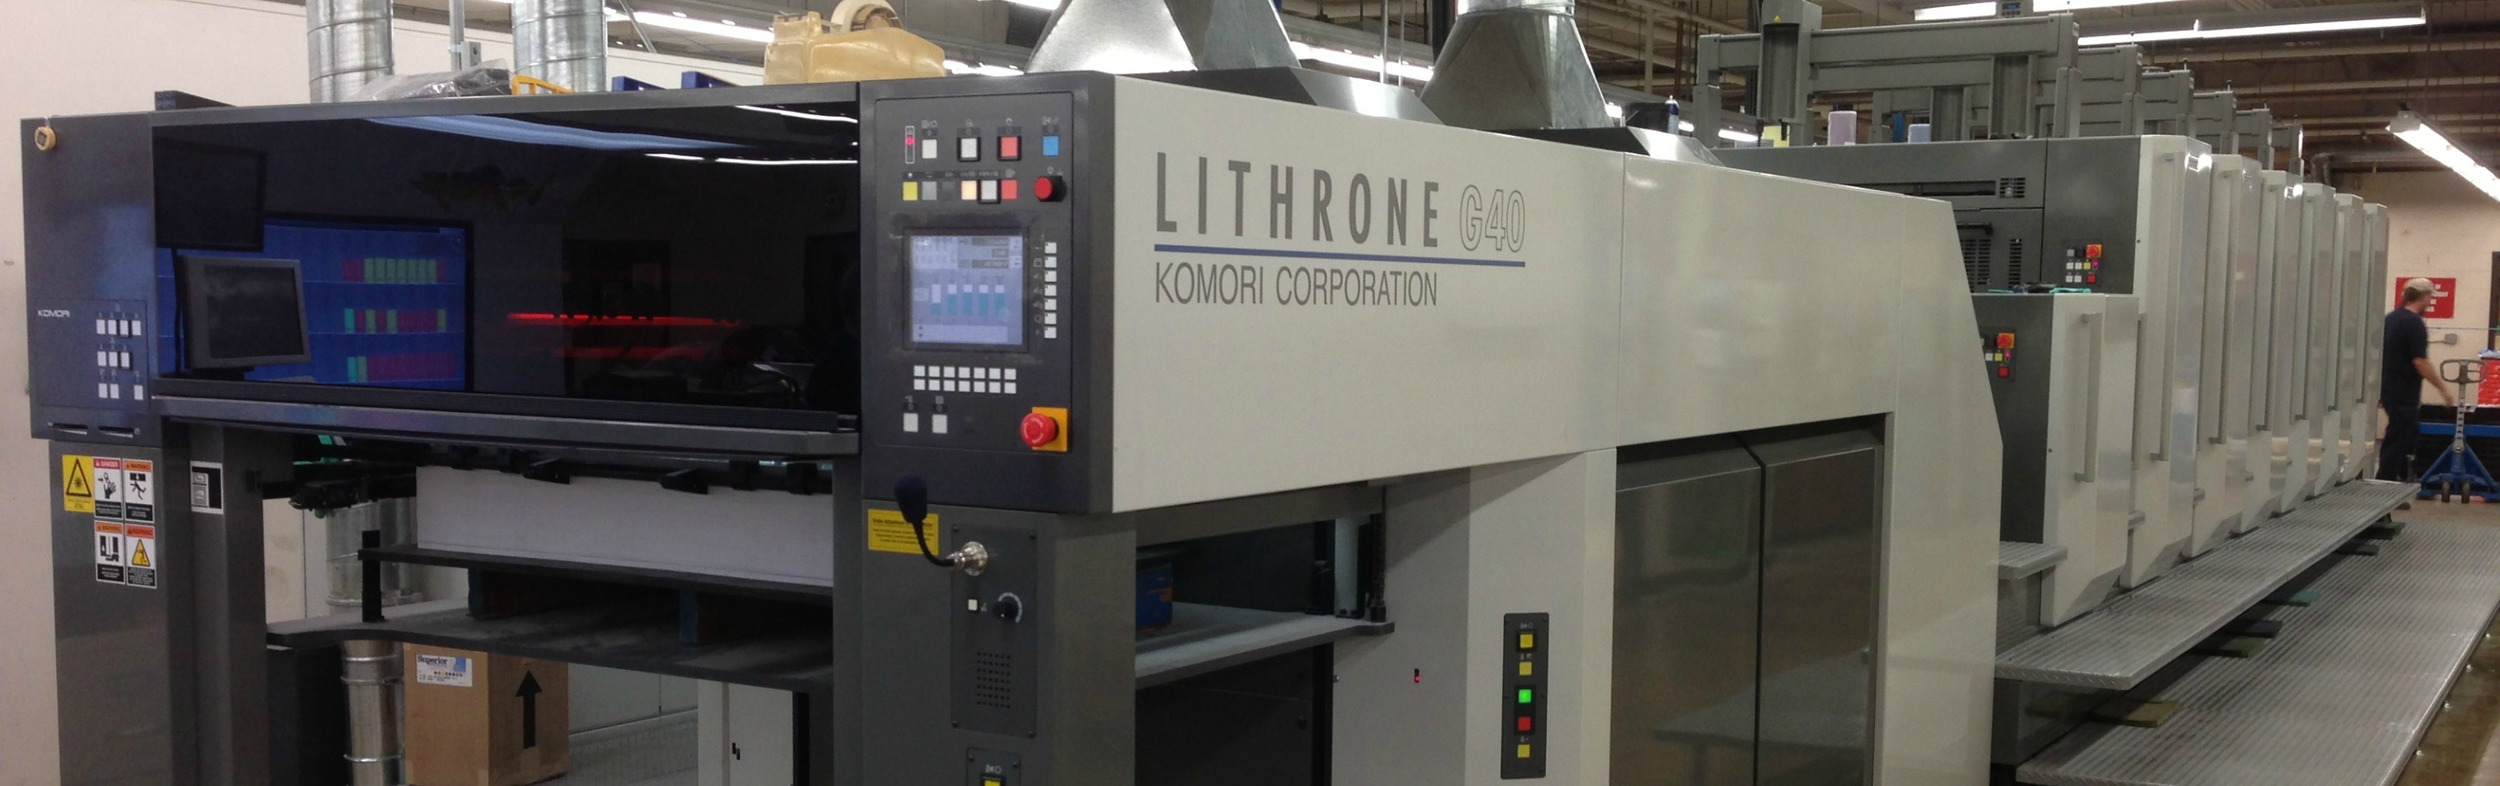 Crossmark Printing of New Berlin, WI has had great success after installing AMS LED UV on their 6 Color Komori Lithrone G4O